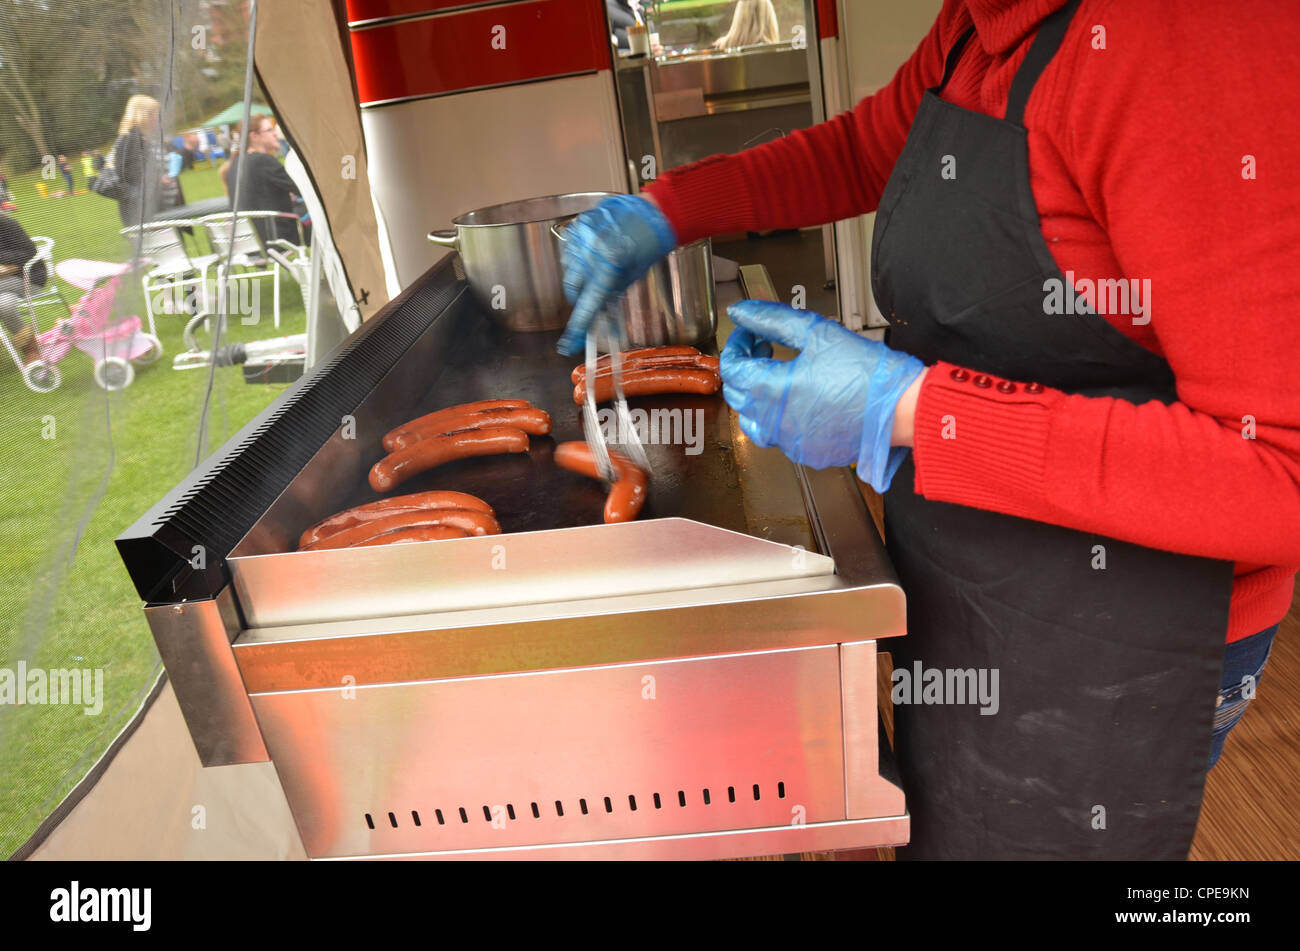 Woman cooking hot dog sausages on griddle at fete - Stock Image